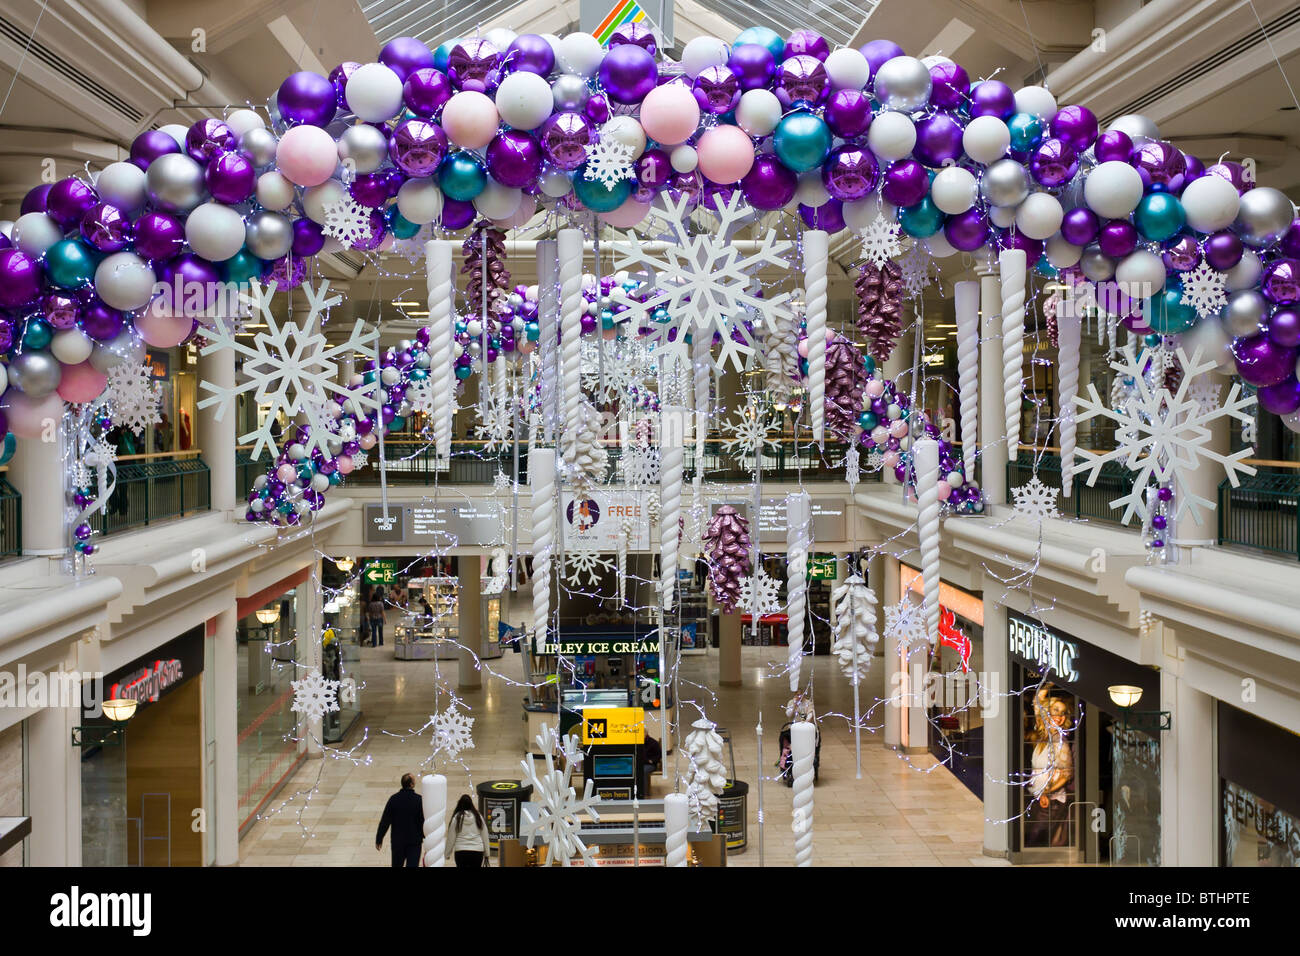 Metrocentre gateshead out of town shopping mall christmas for Retail christmas decorations ideas